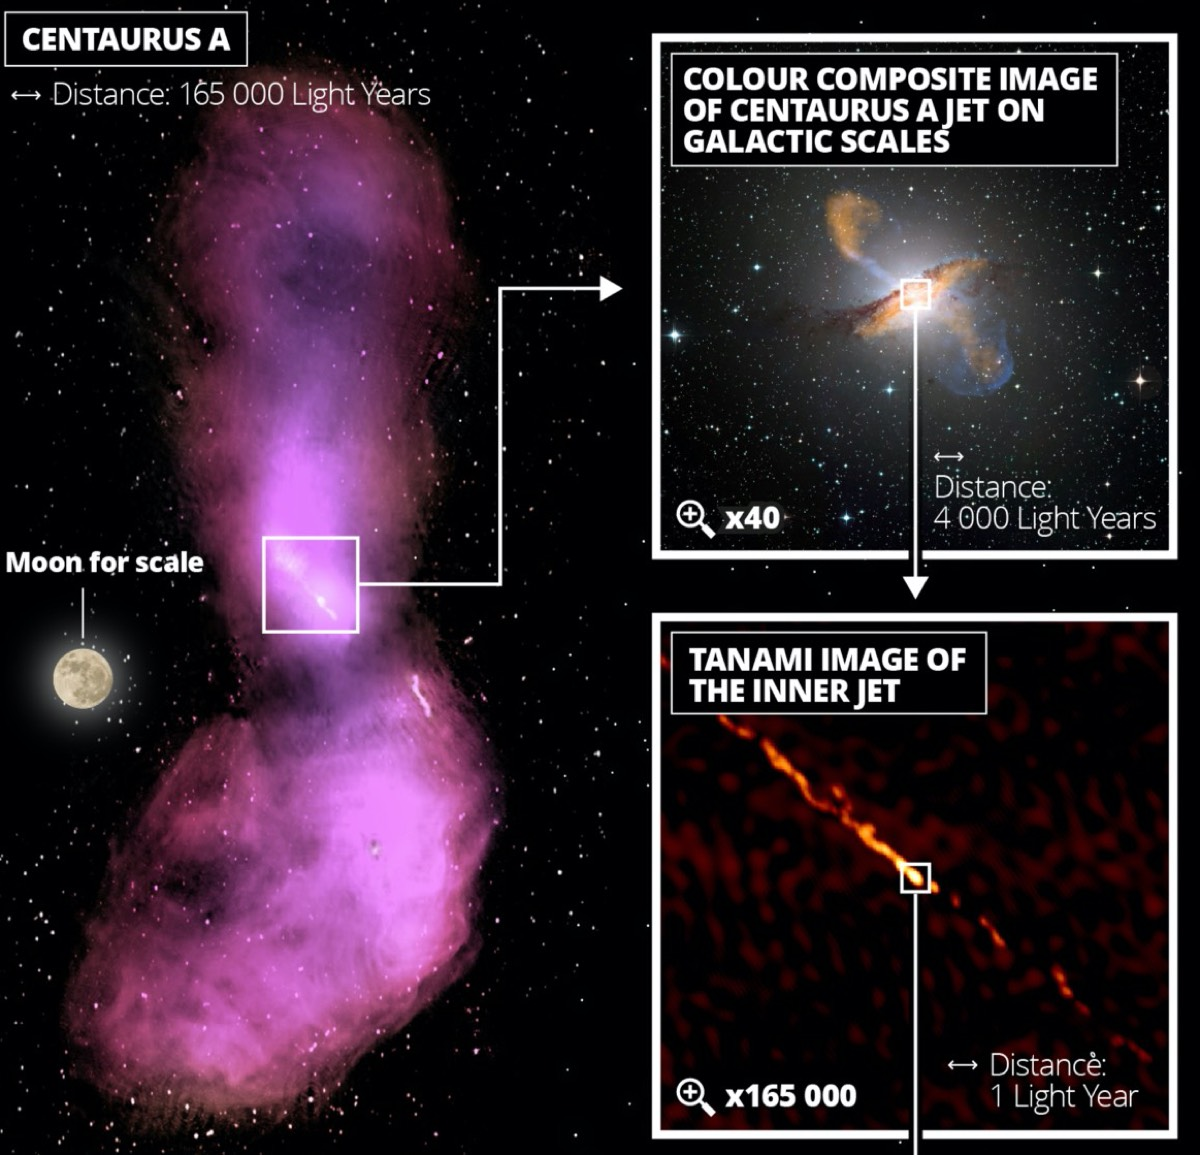 The top-left image shows how the jet disperses into gas clouds that emit radio waves. The top-right panel displays a color composite image. The next panel below shows a zoom image of the inner radio jet obtained with the TANAMI telescopes.